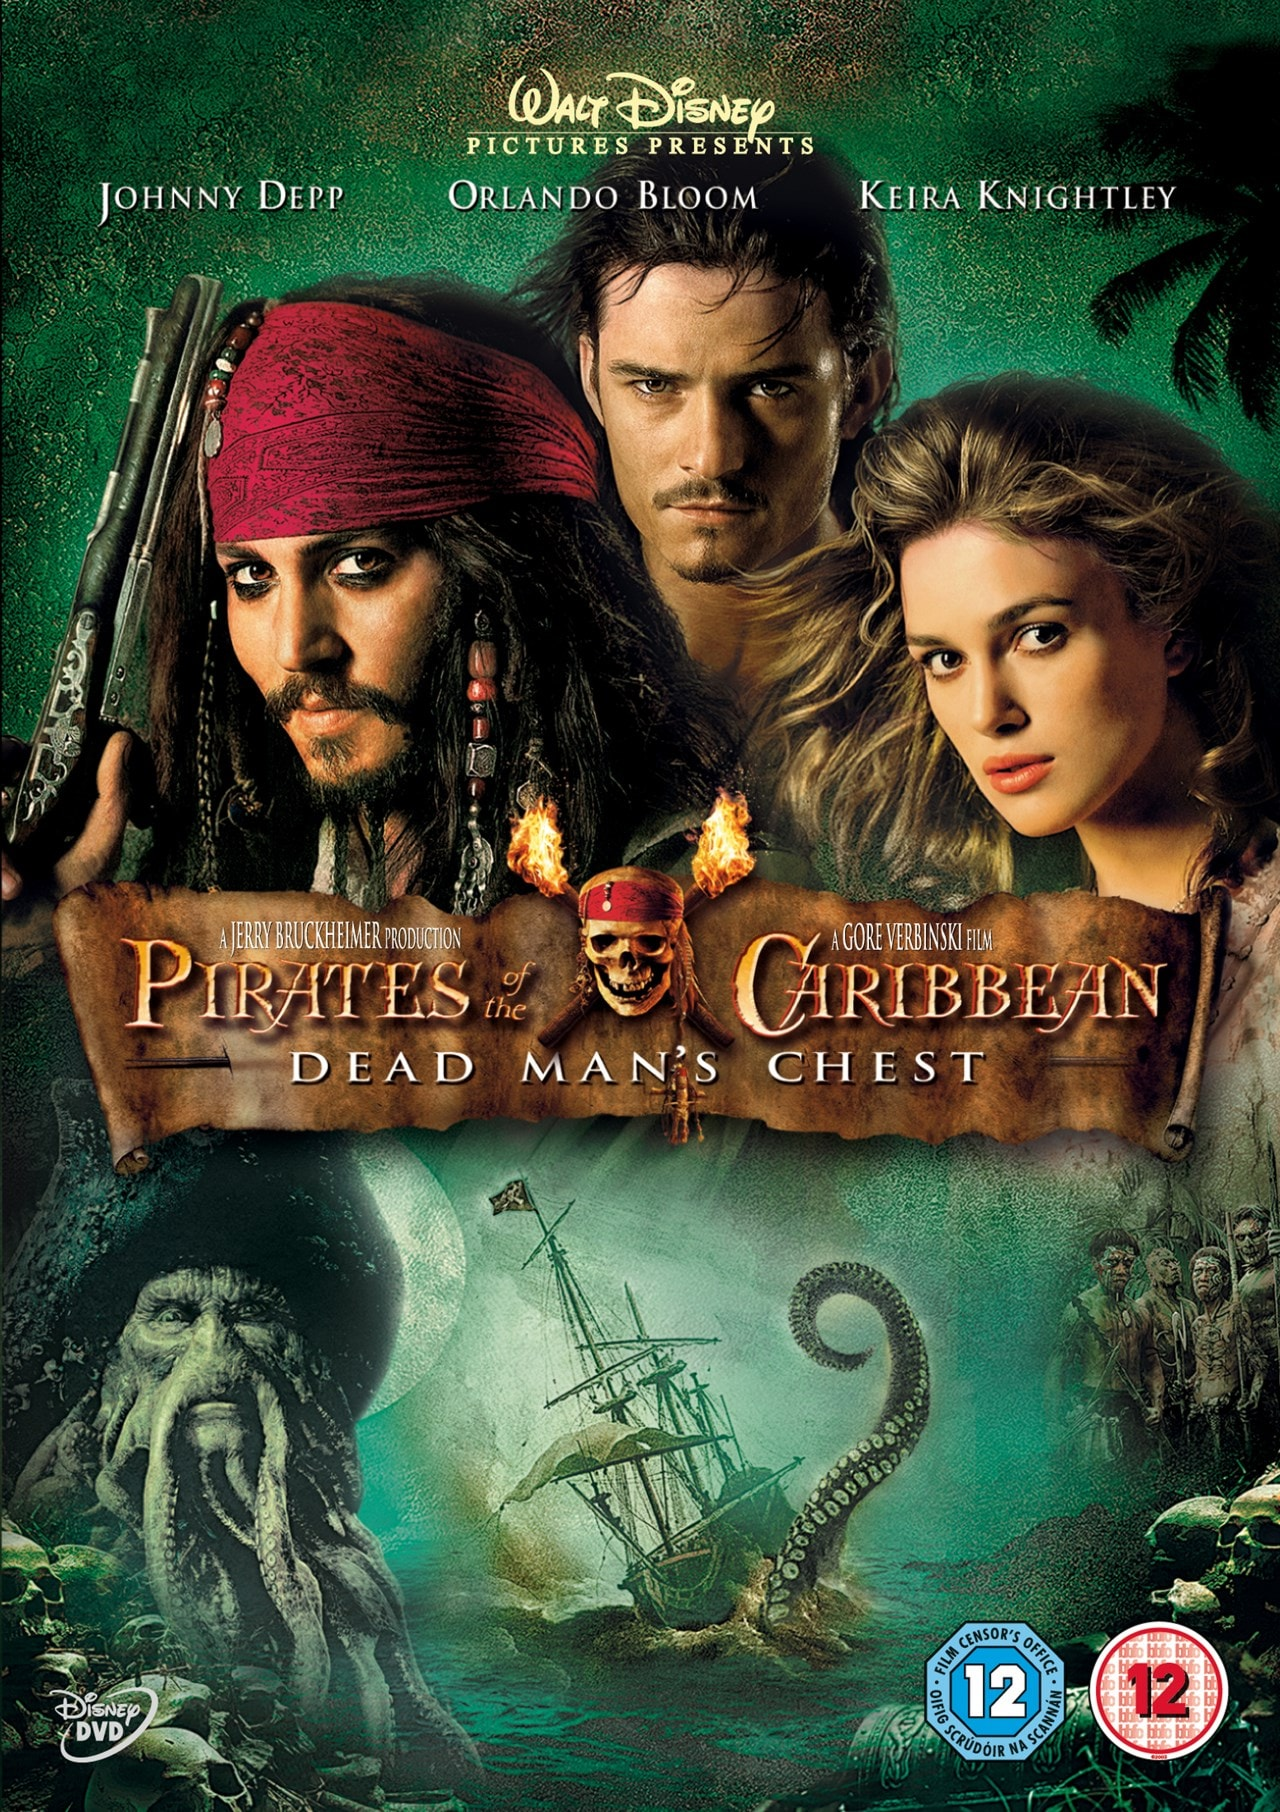 Pirates of the Caribbean: Dead Man's Chest - 3